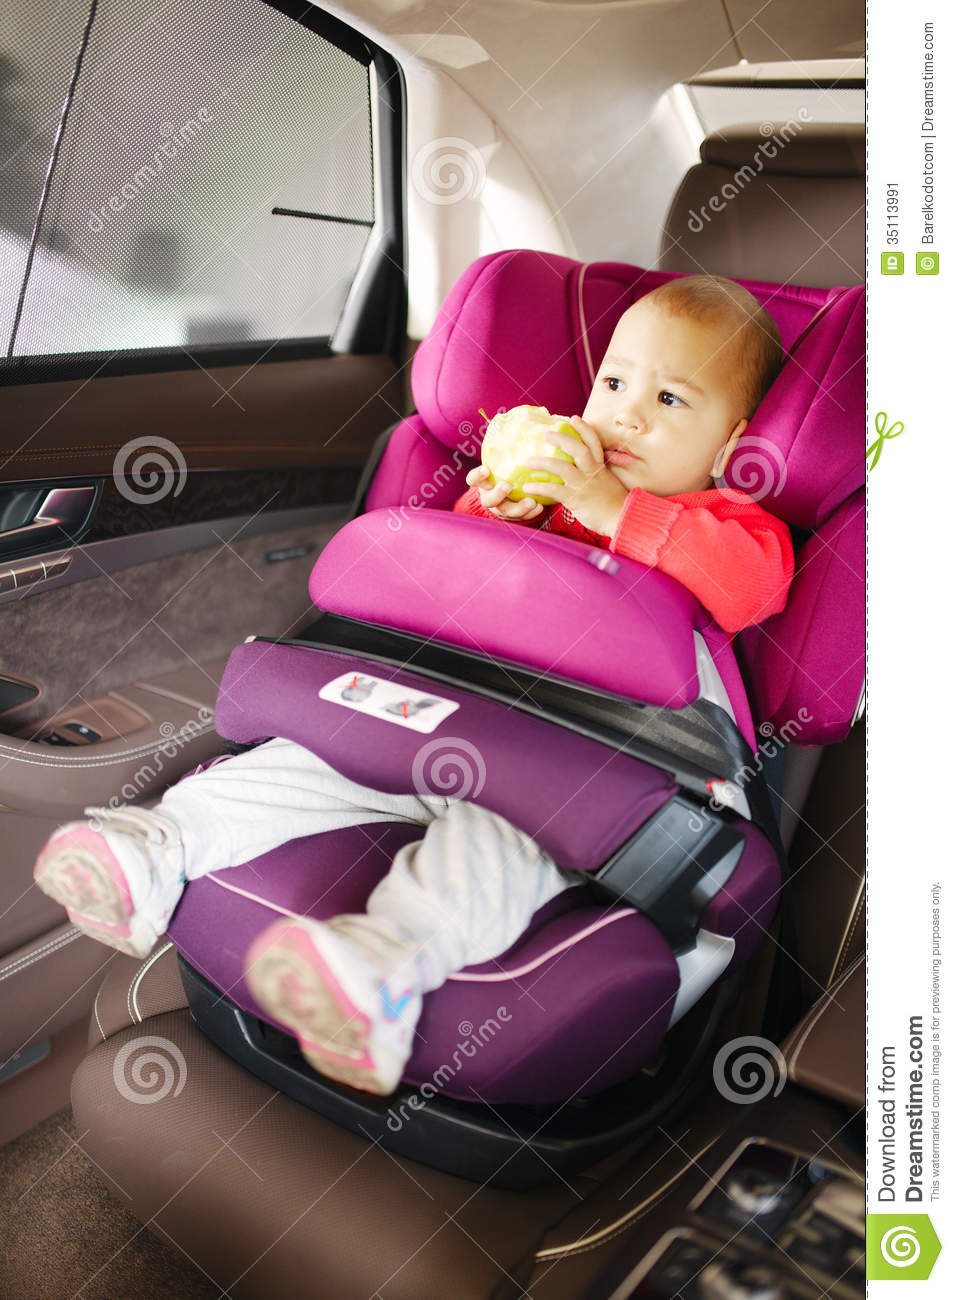 Baby Car Seat For Safety Stock Image Image 35113991